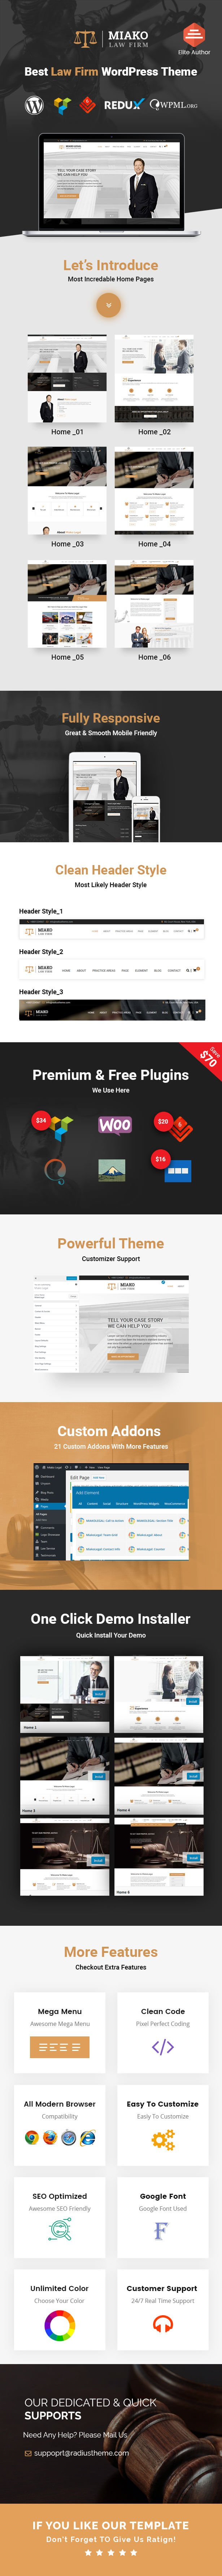 law wordpress theme